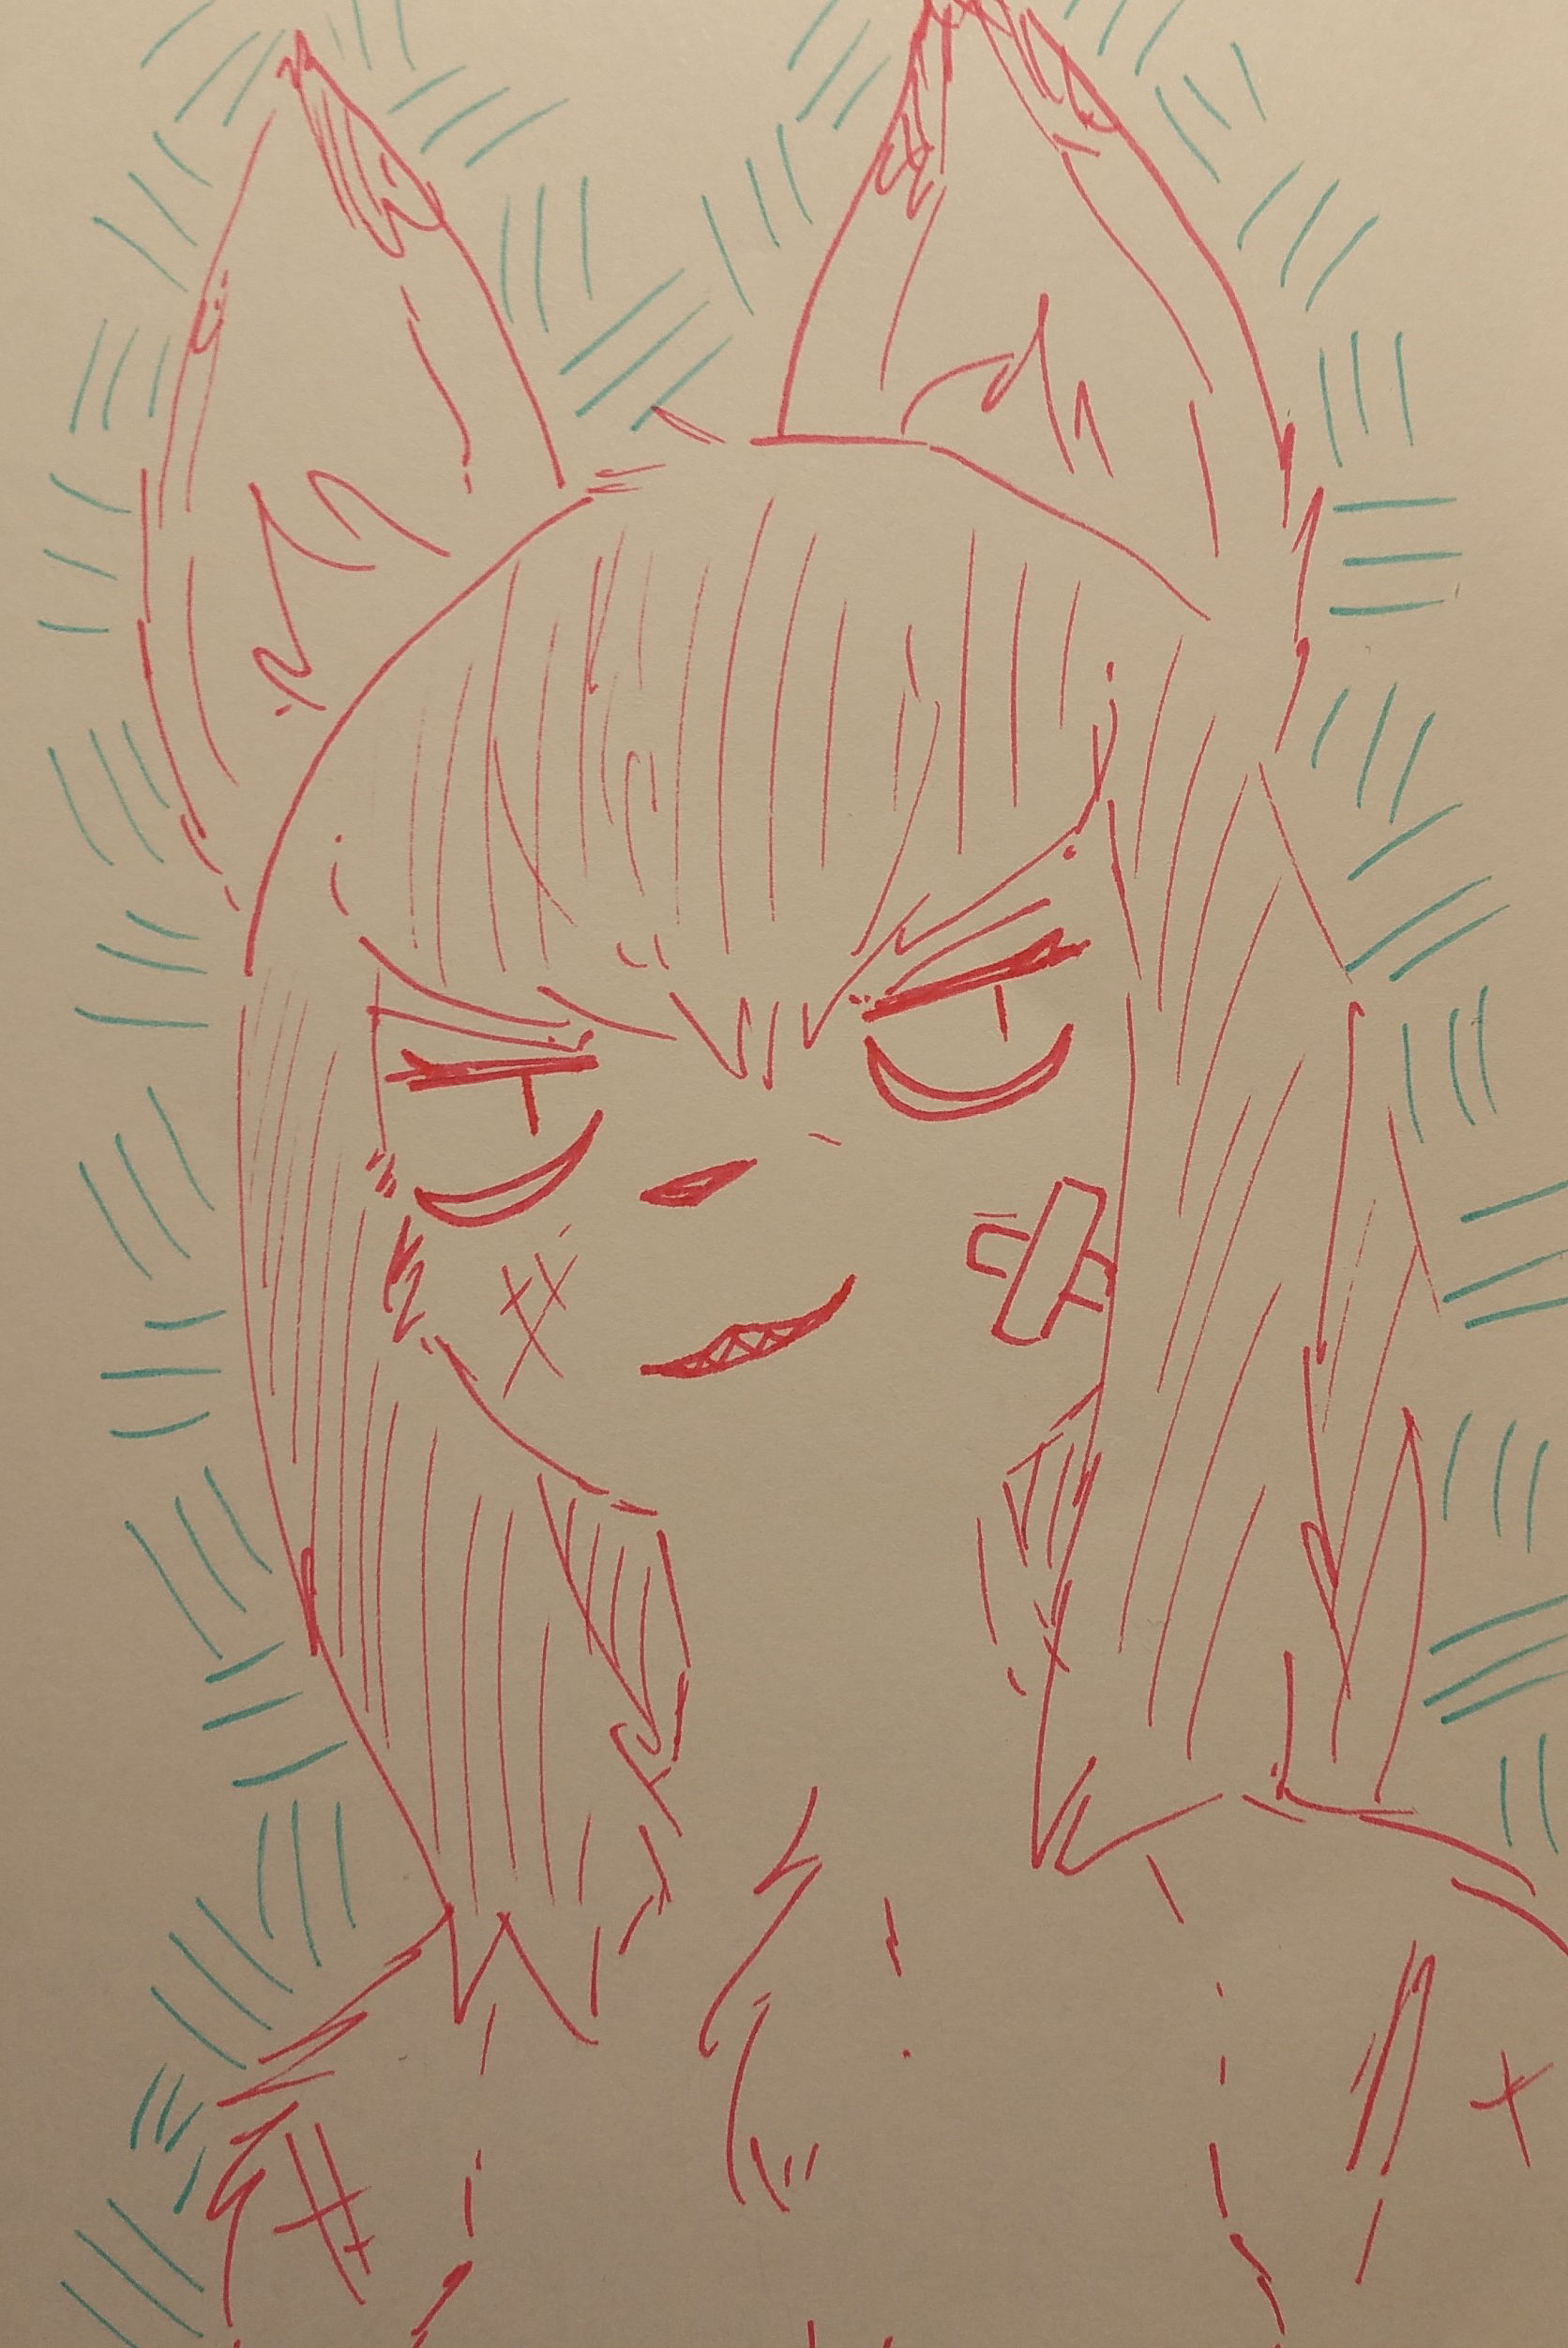 by @catteboots